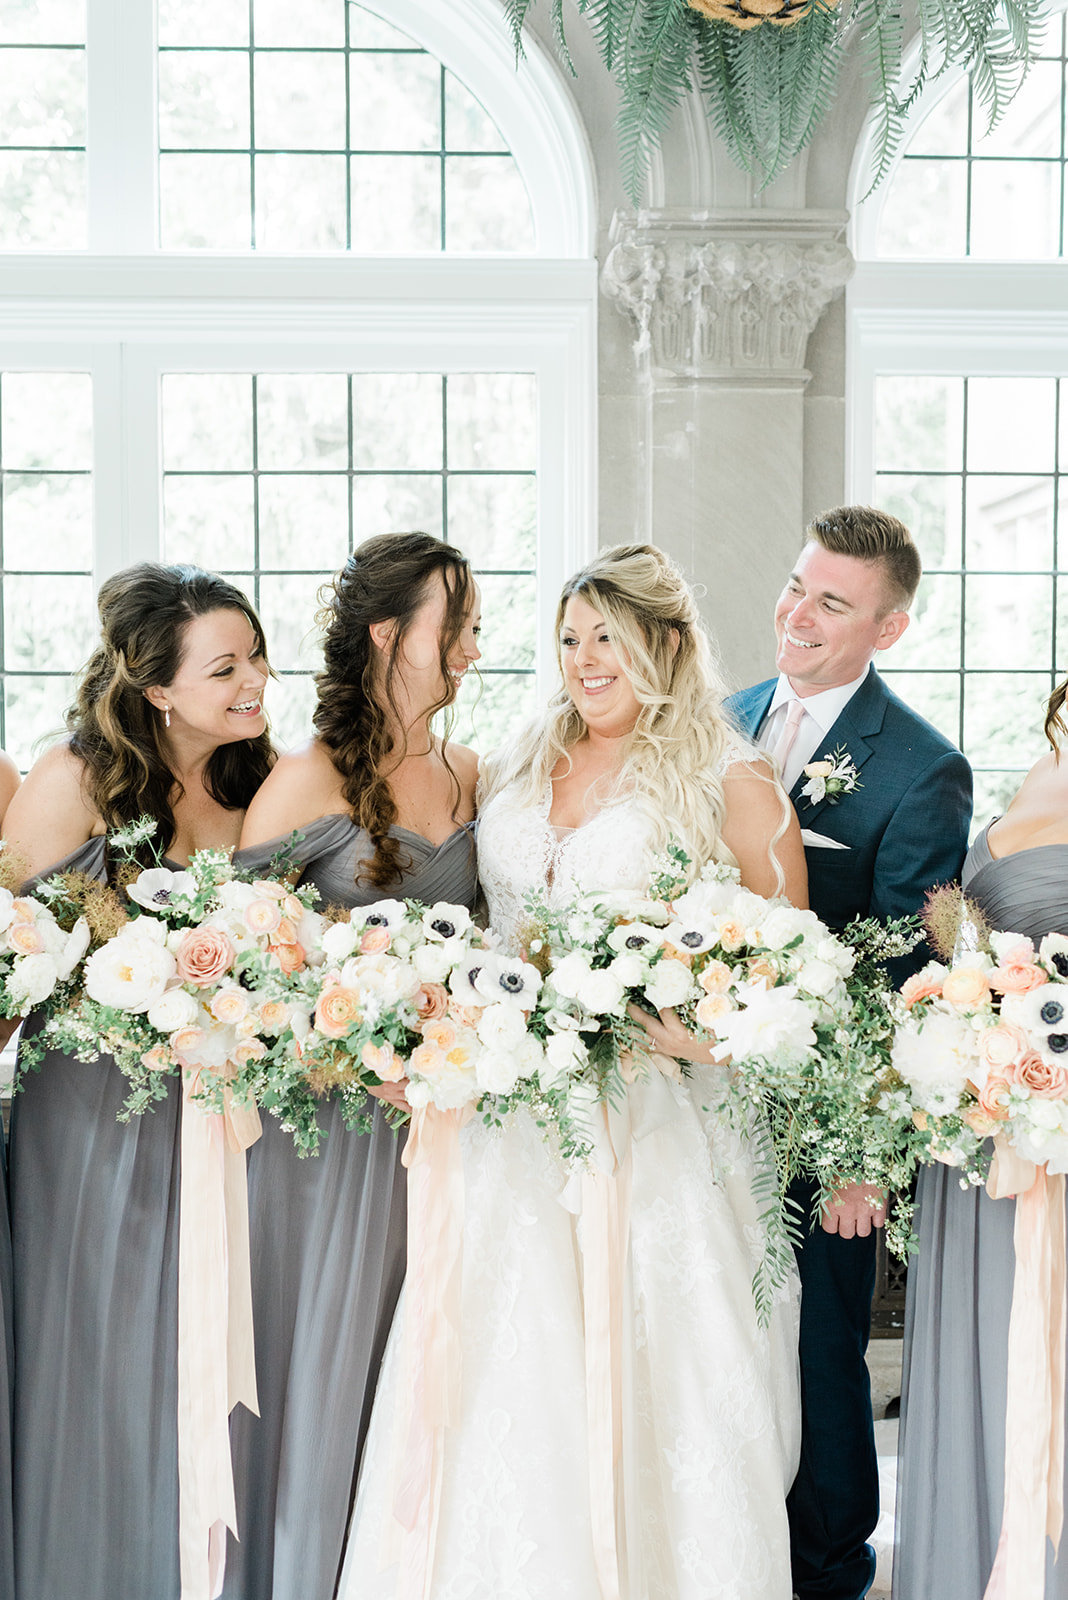 Ashley Link Photography-161